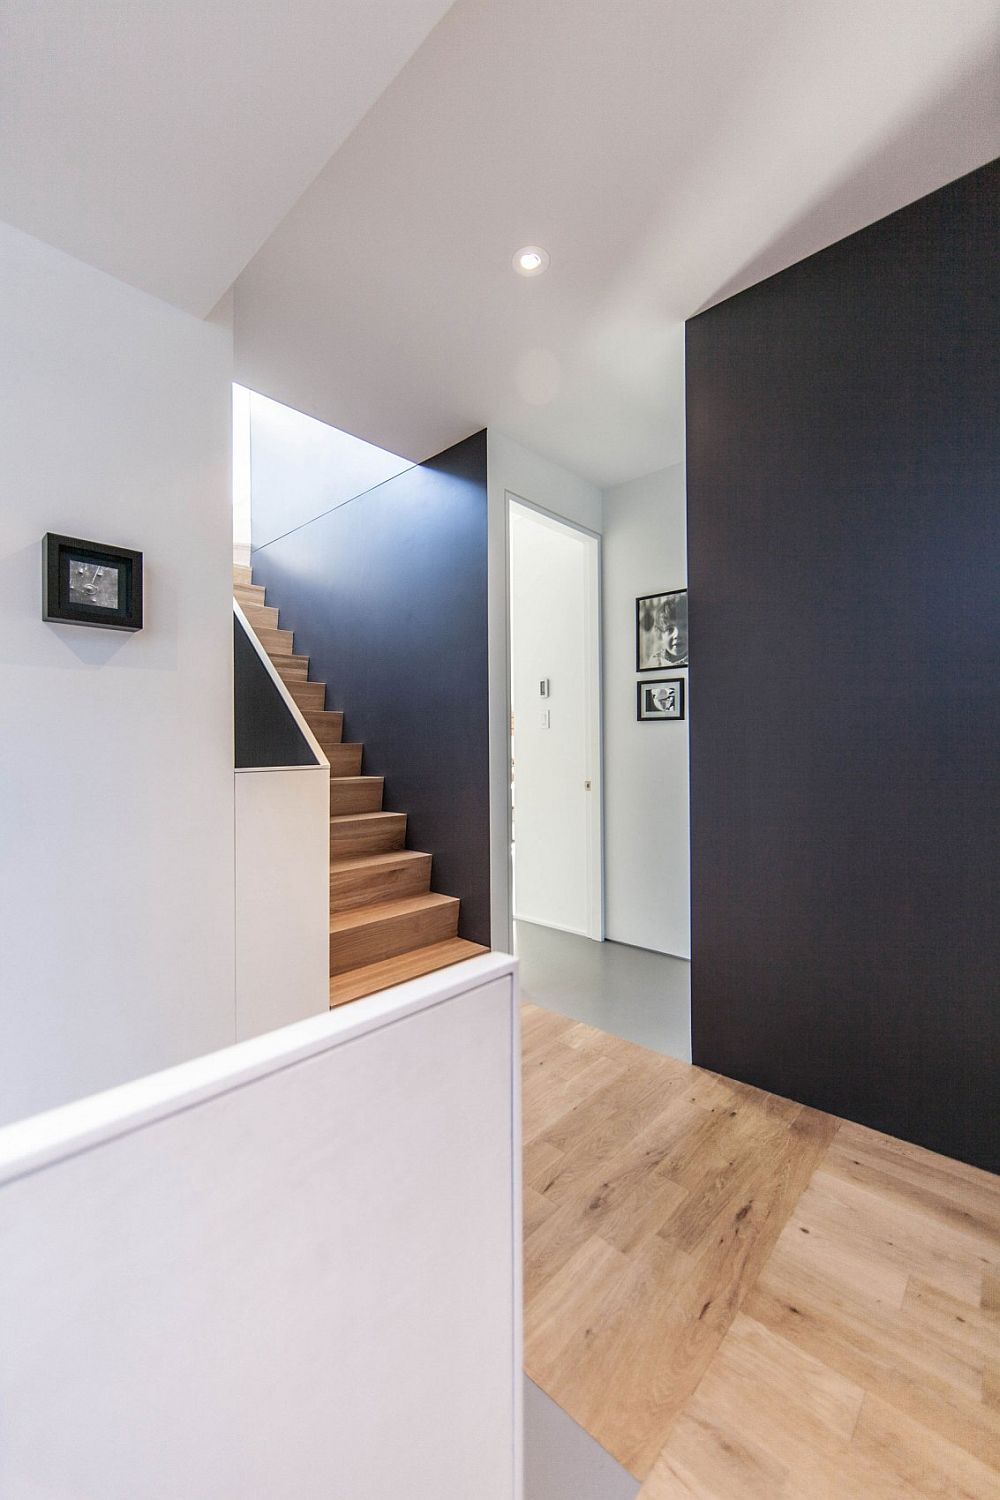 Wooden staircase and flooring bring a warmer texture to the interior